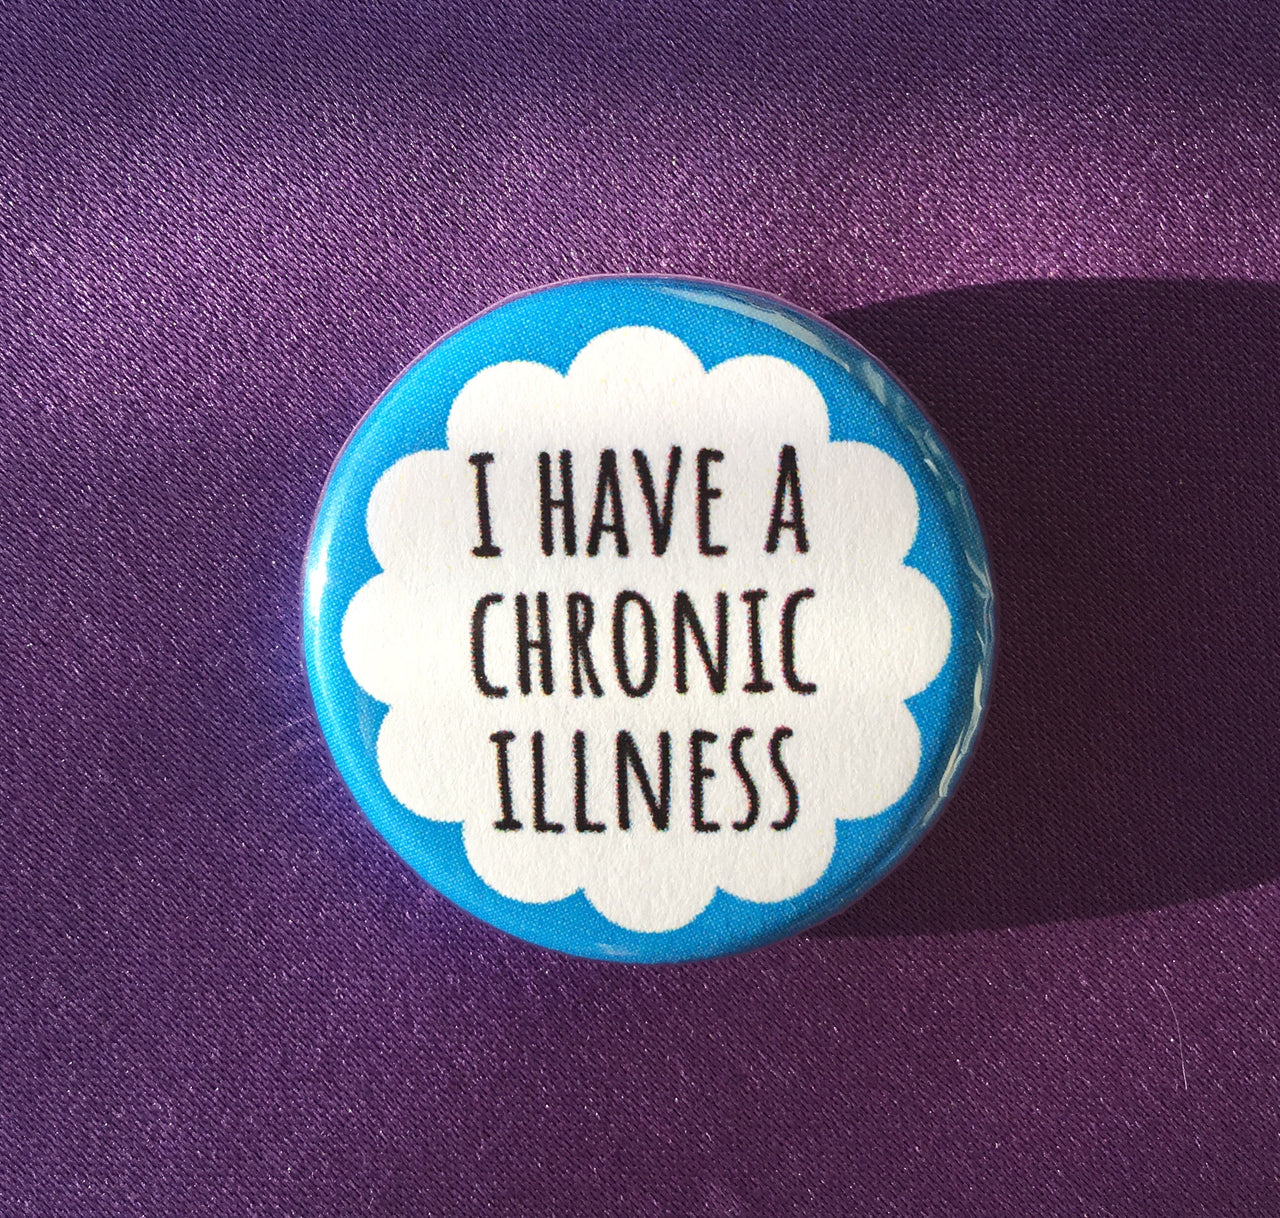 I have a chronic illness - Radical Buttons